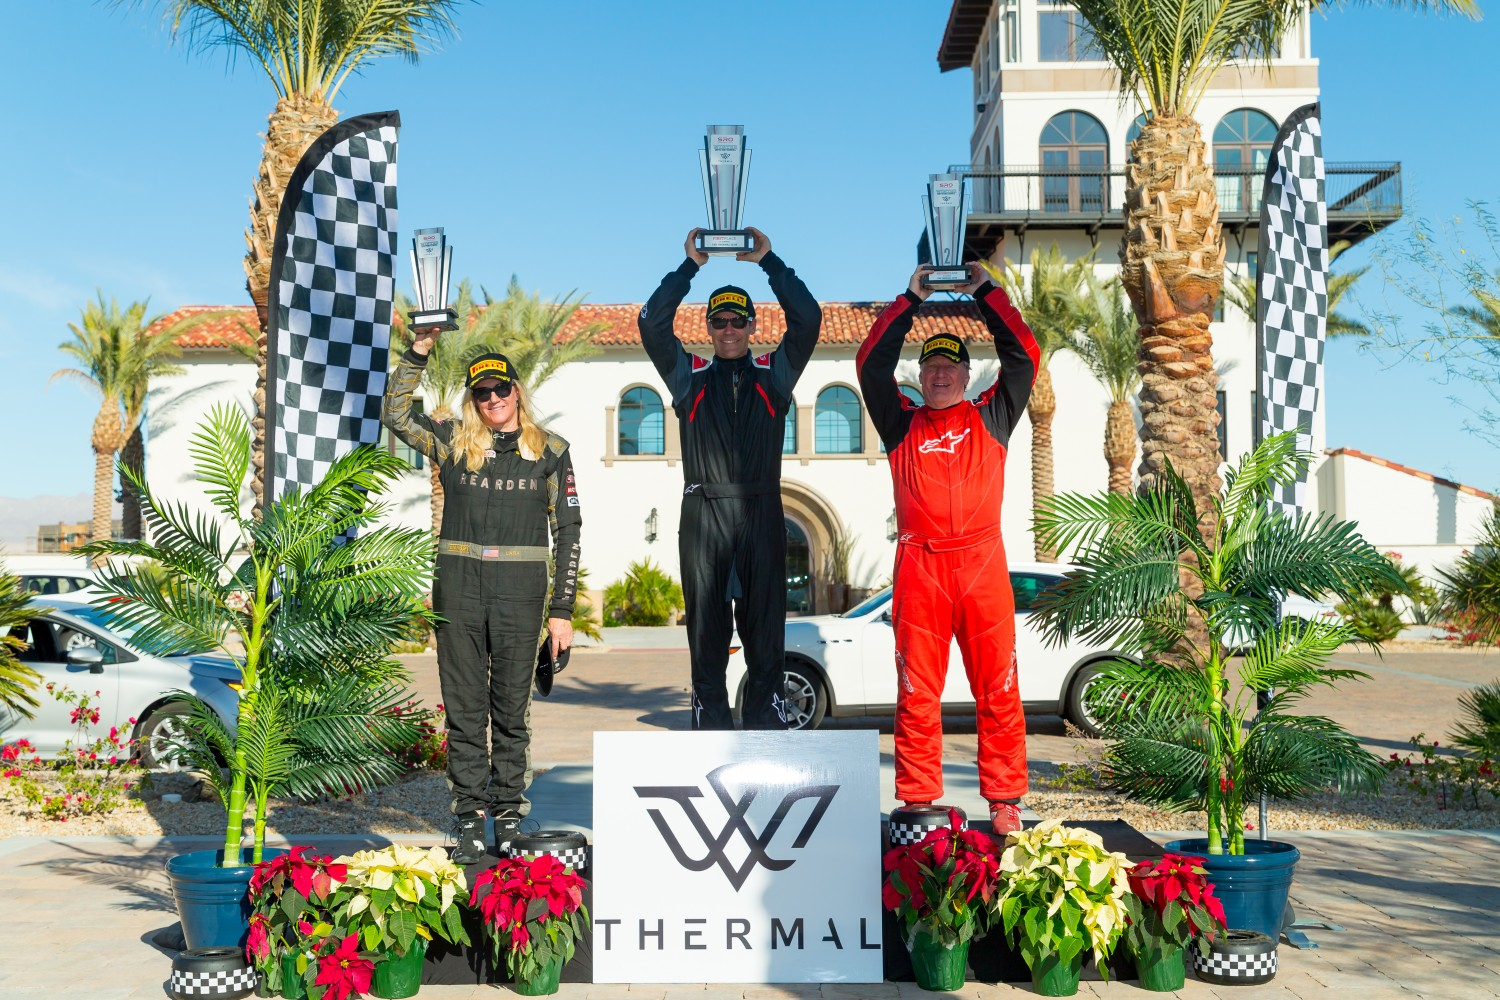 TCR, TC, and TCA Run Groups - 2019 Winter Invitational at The Thermal Club, Dec 13-15, 2019 - Thermal, Calif.